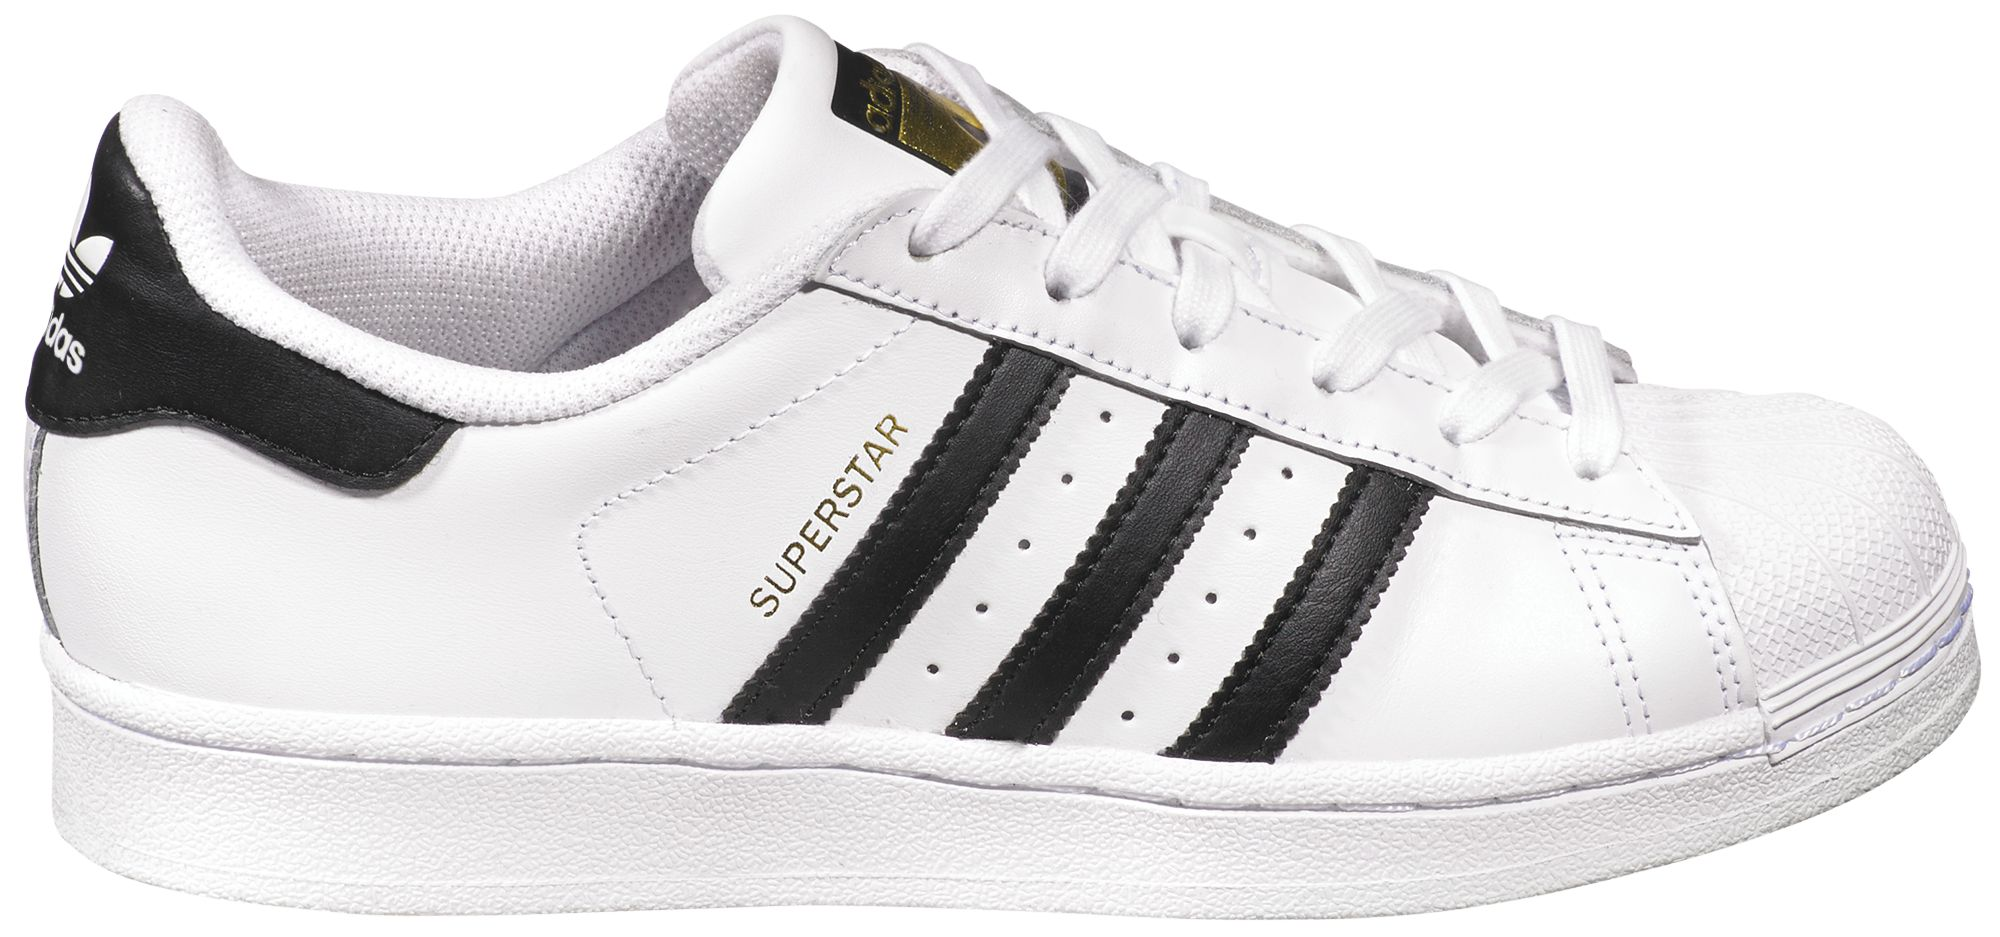 adidas superstar womens shoes